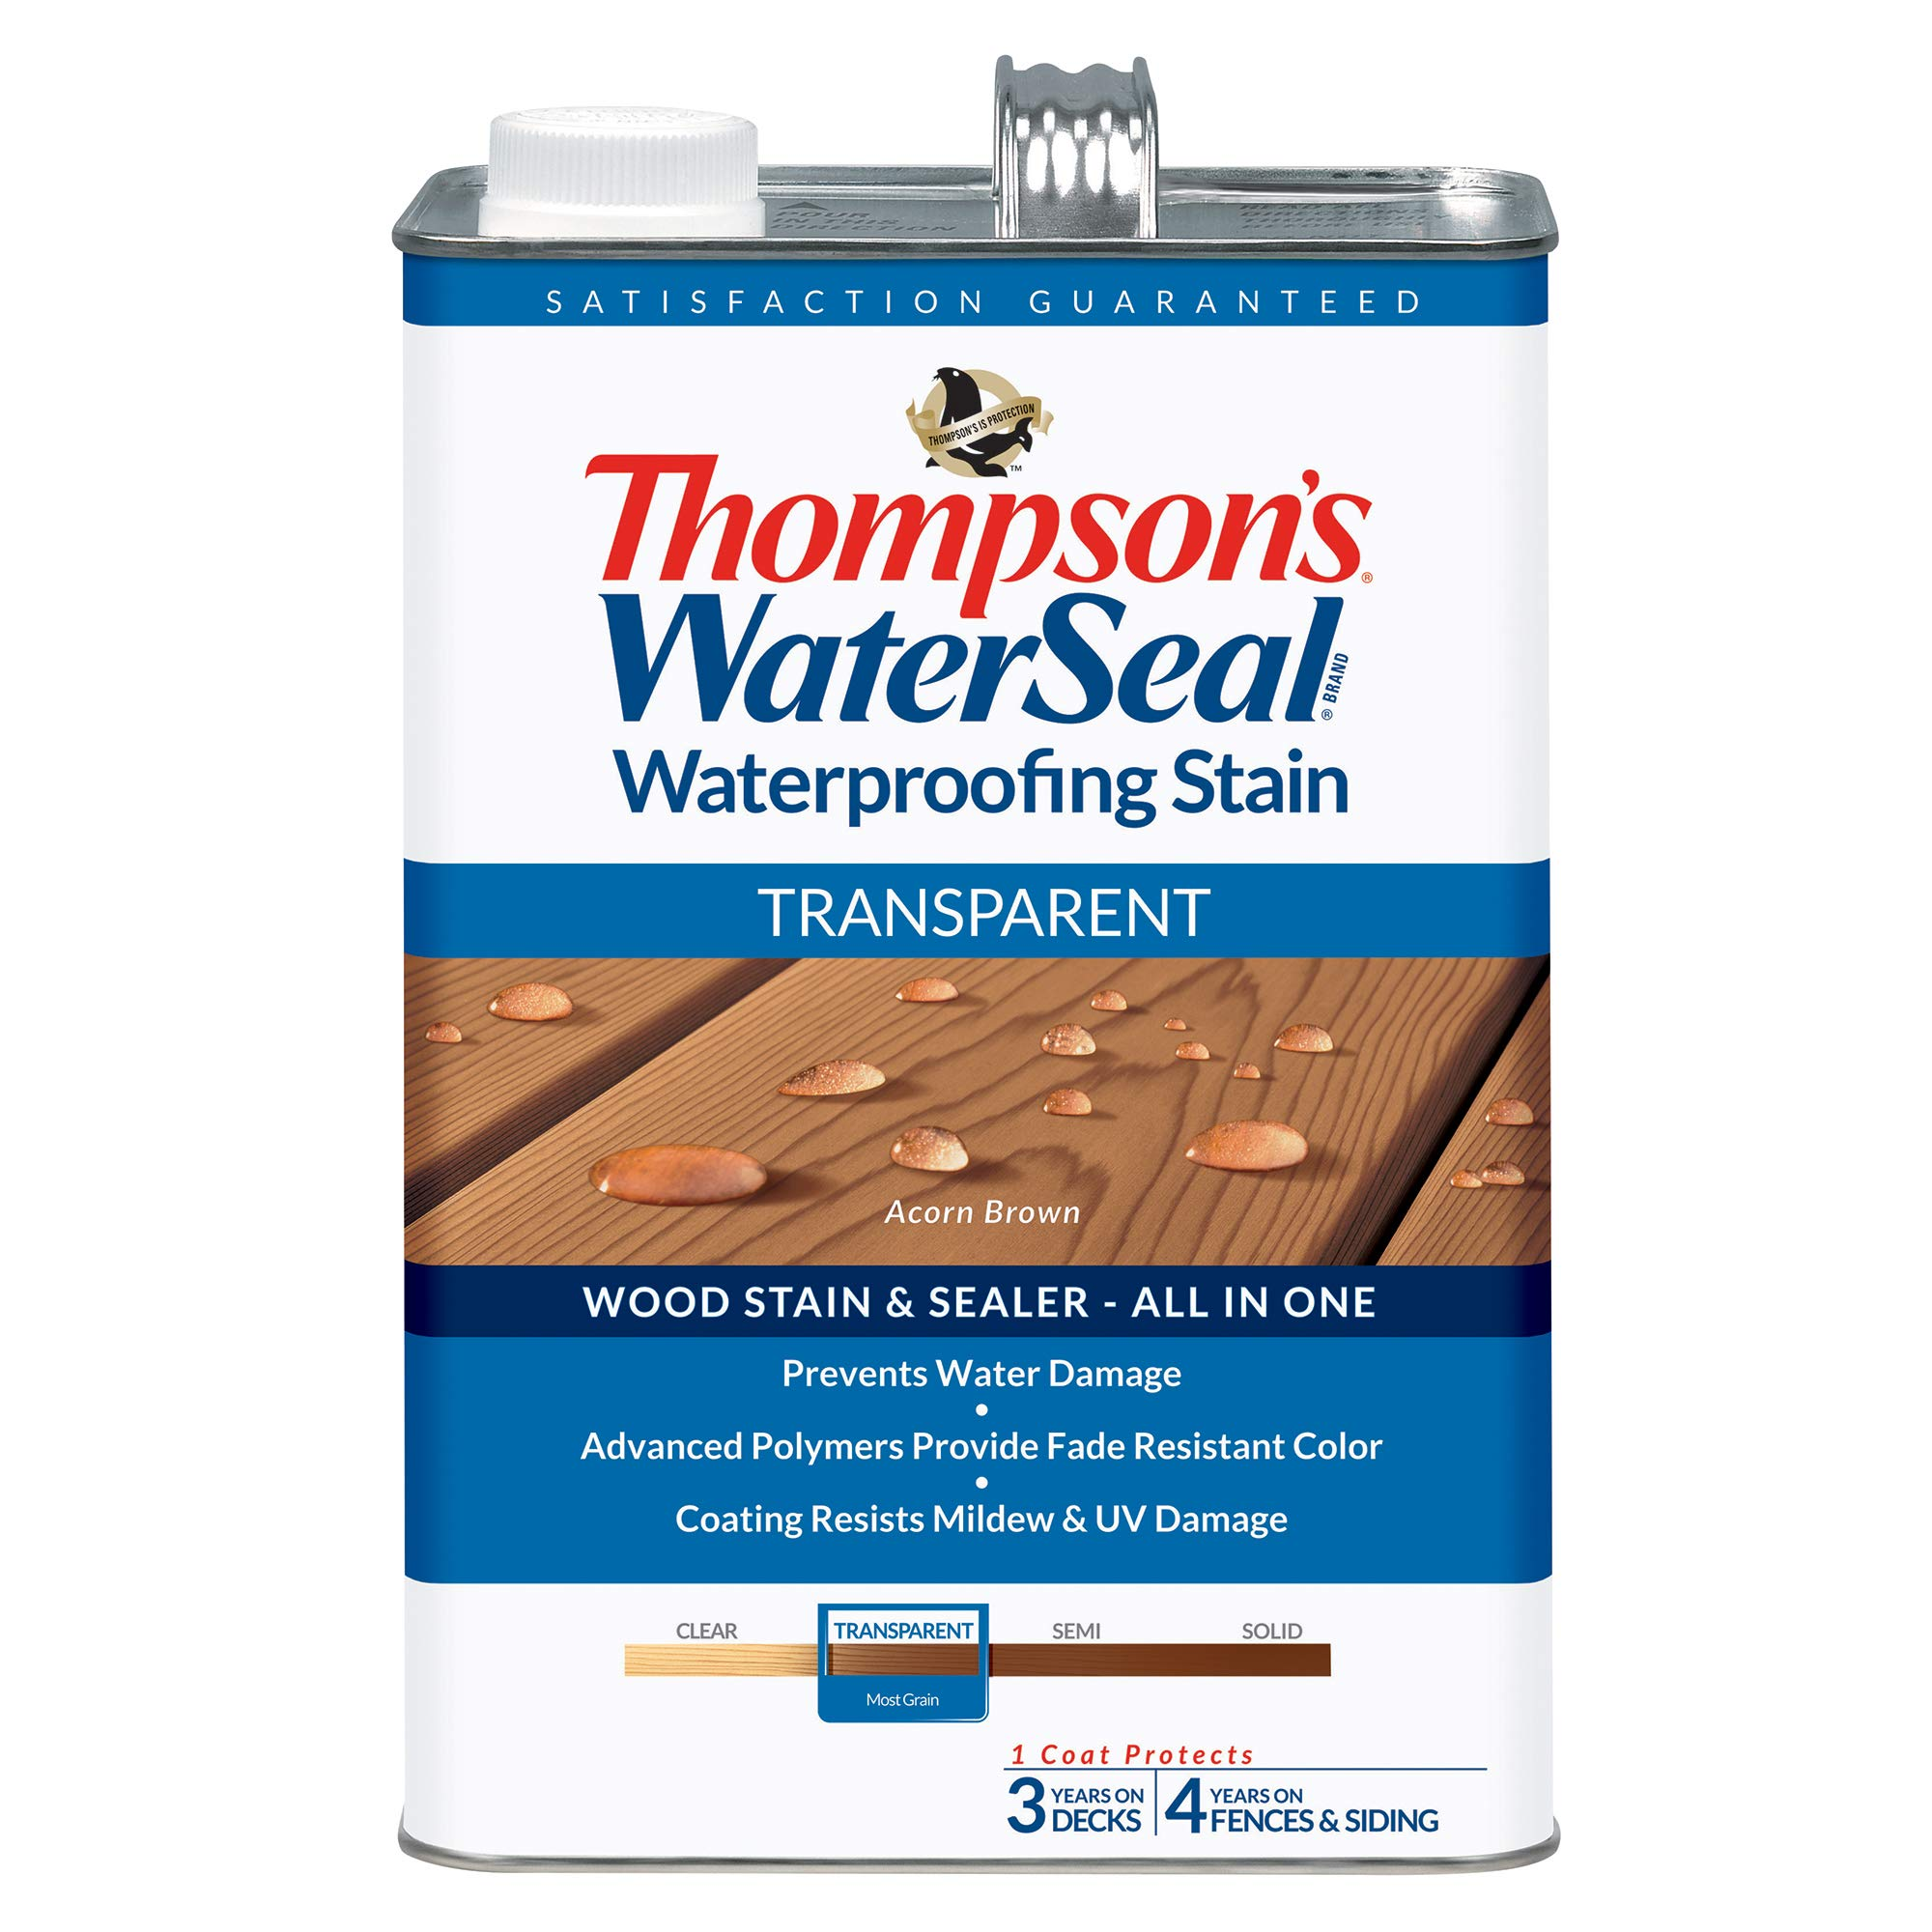 THOMPSONS WATERSEAL TH 041841 16 Transparent Waterproofing